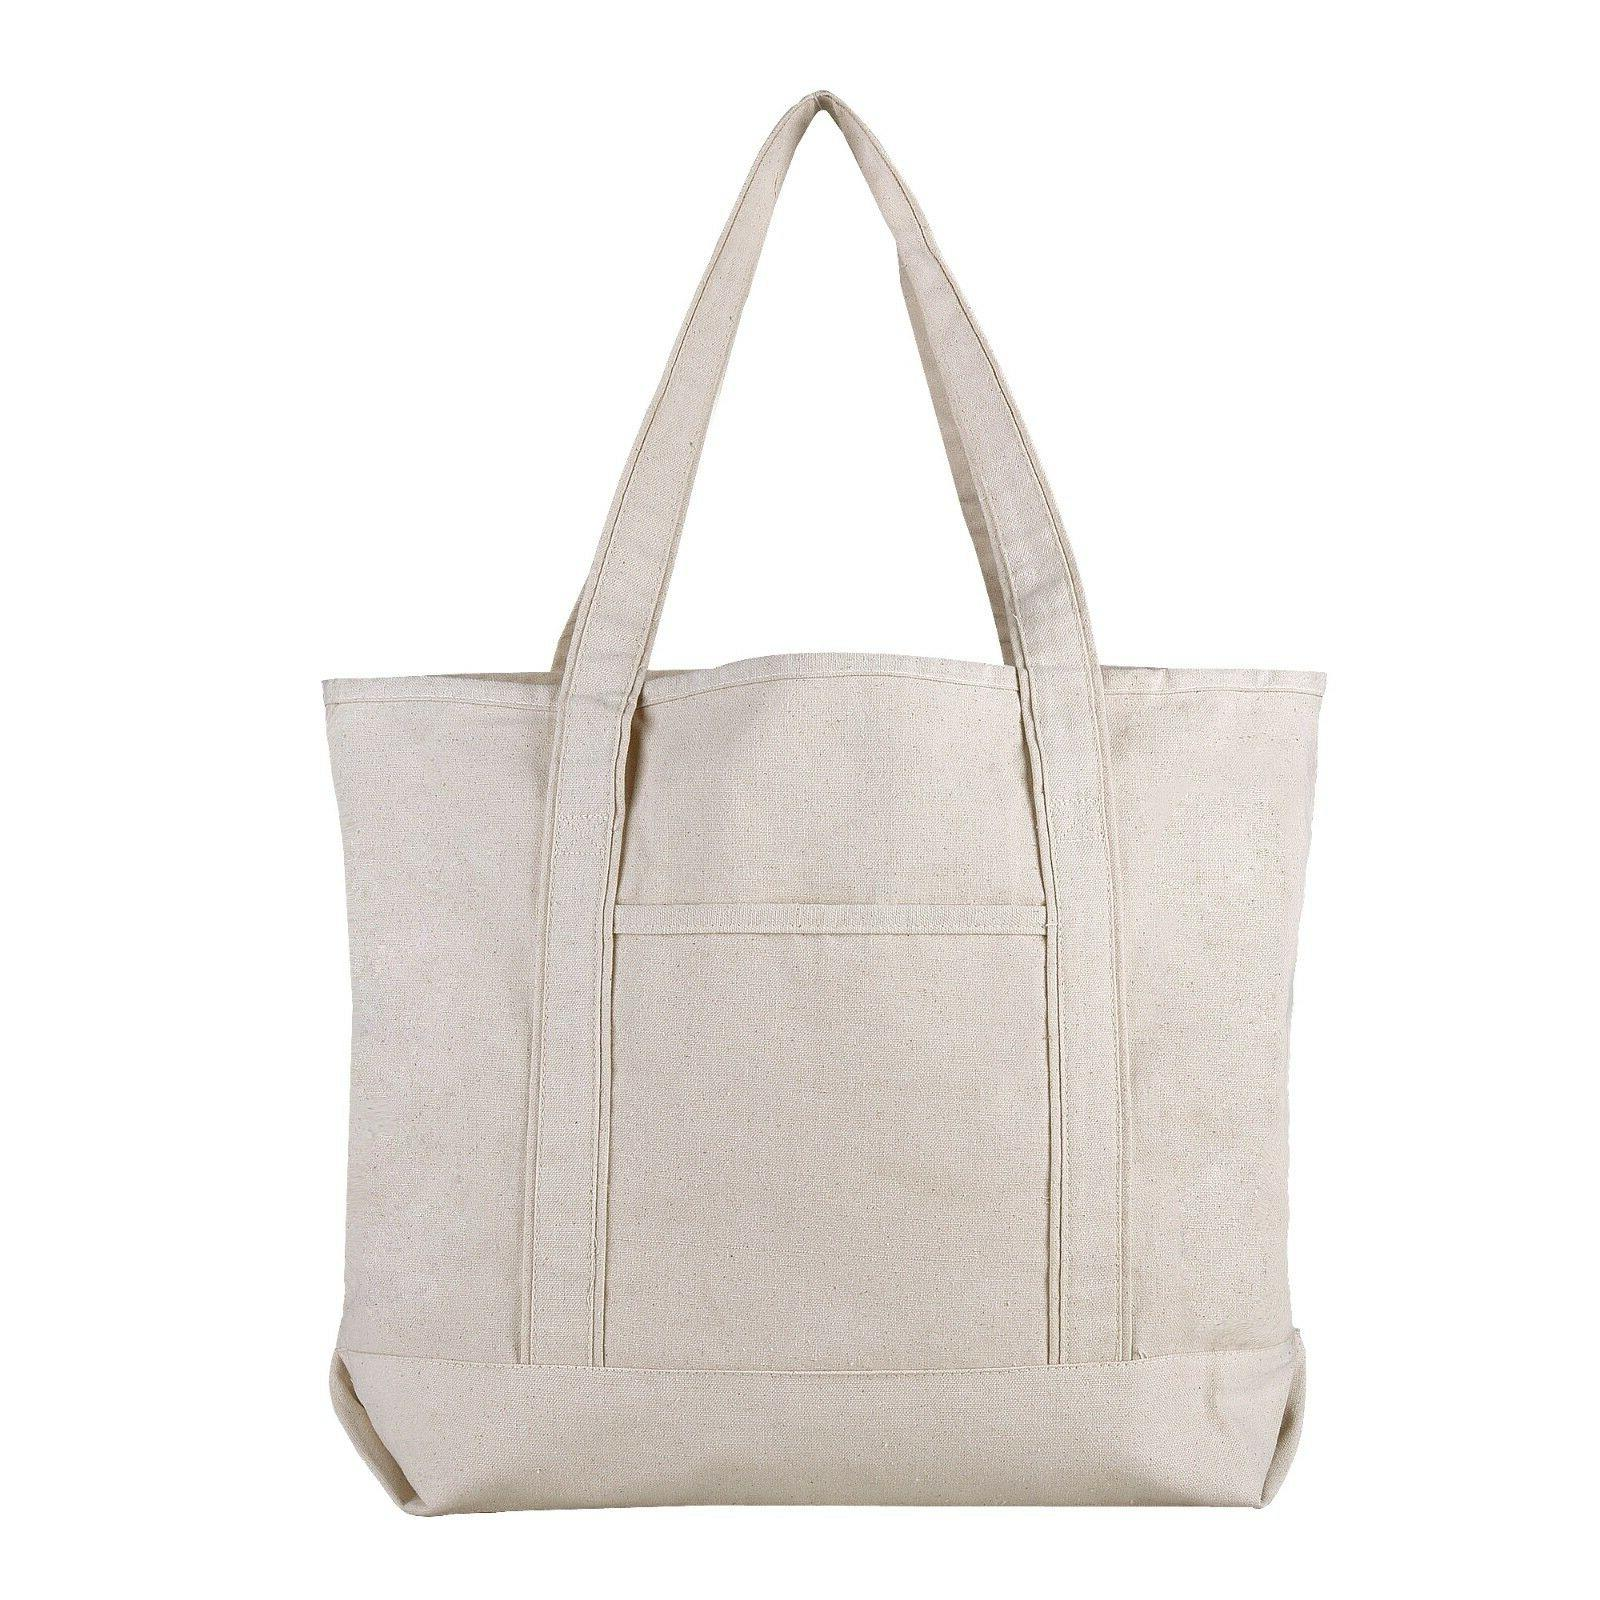 Extra Sturdy Canvas Tote for Work